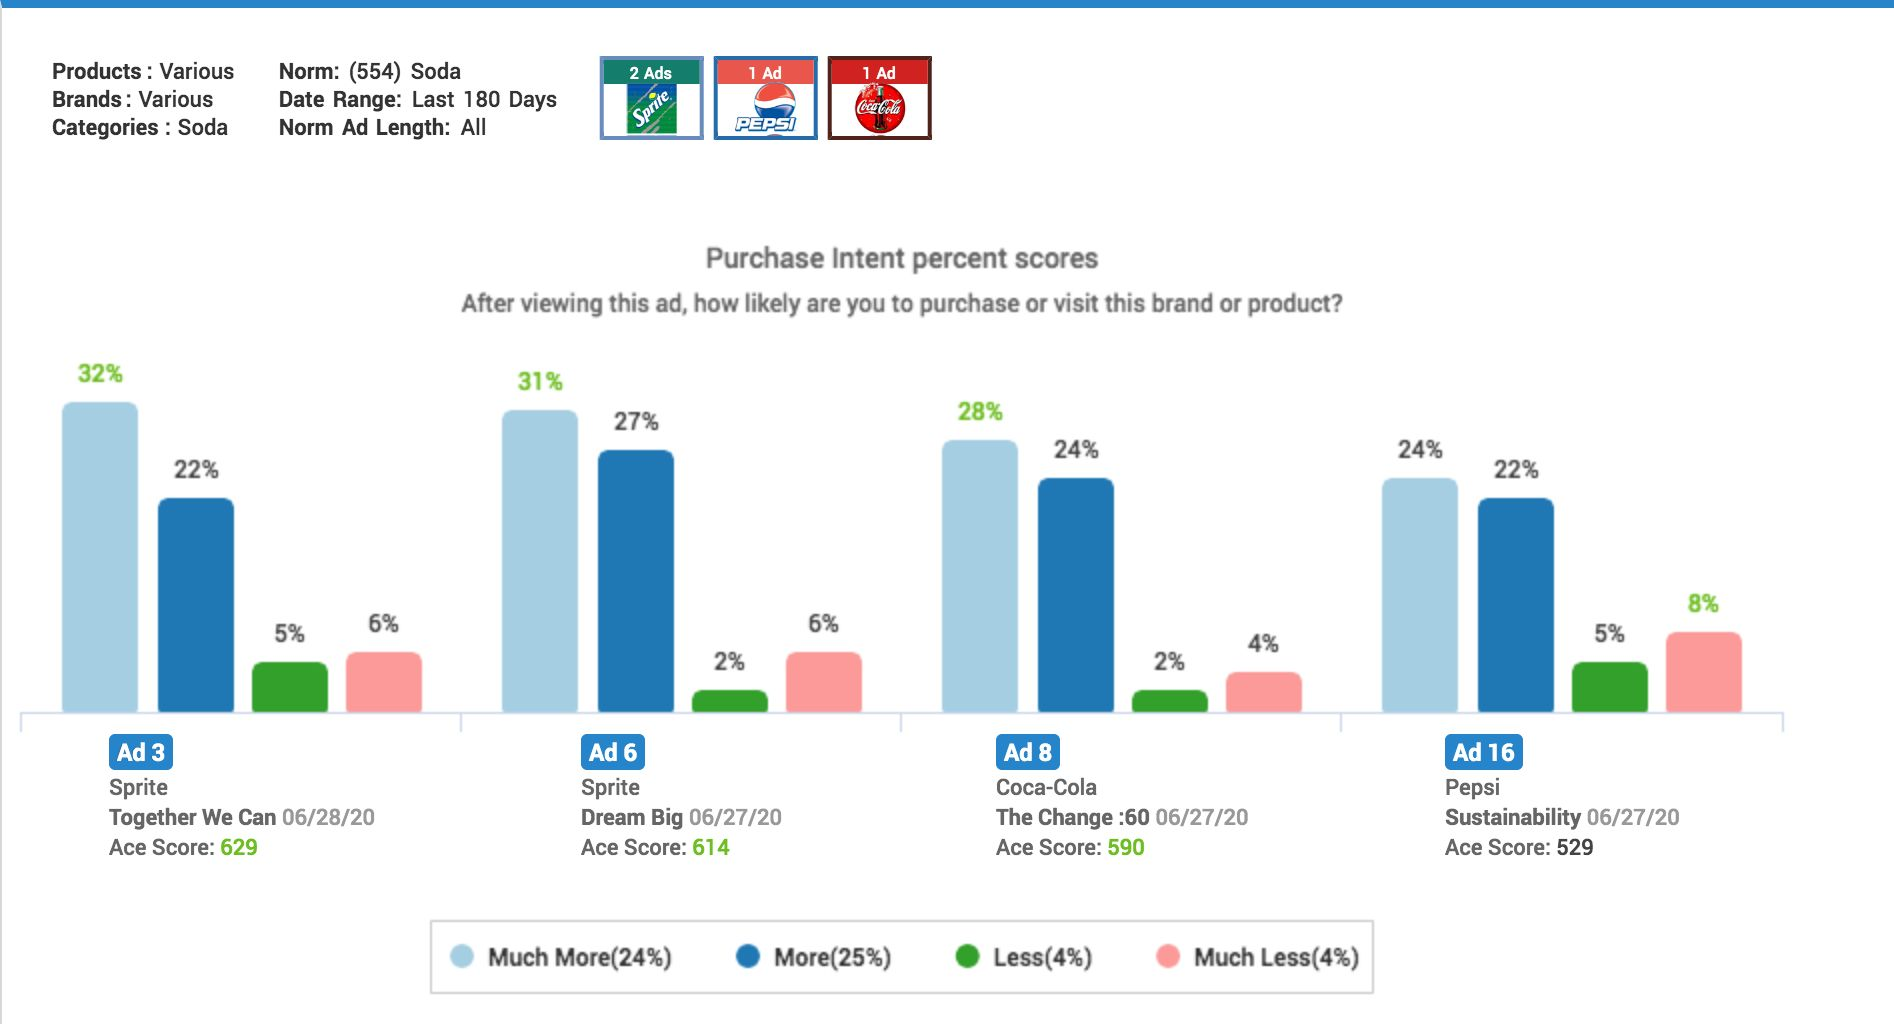 Ace Metrix Purchase Intent Chart for Black Lives Matter themed ads from Sprite, Coca-Cola & Pepsi